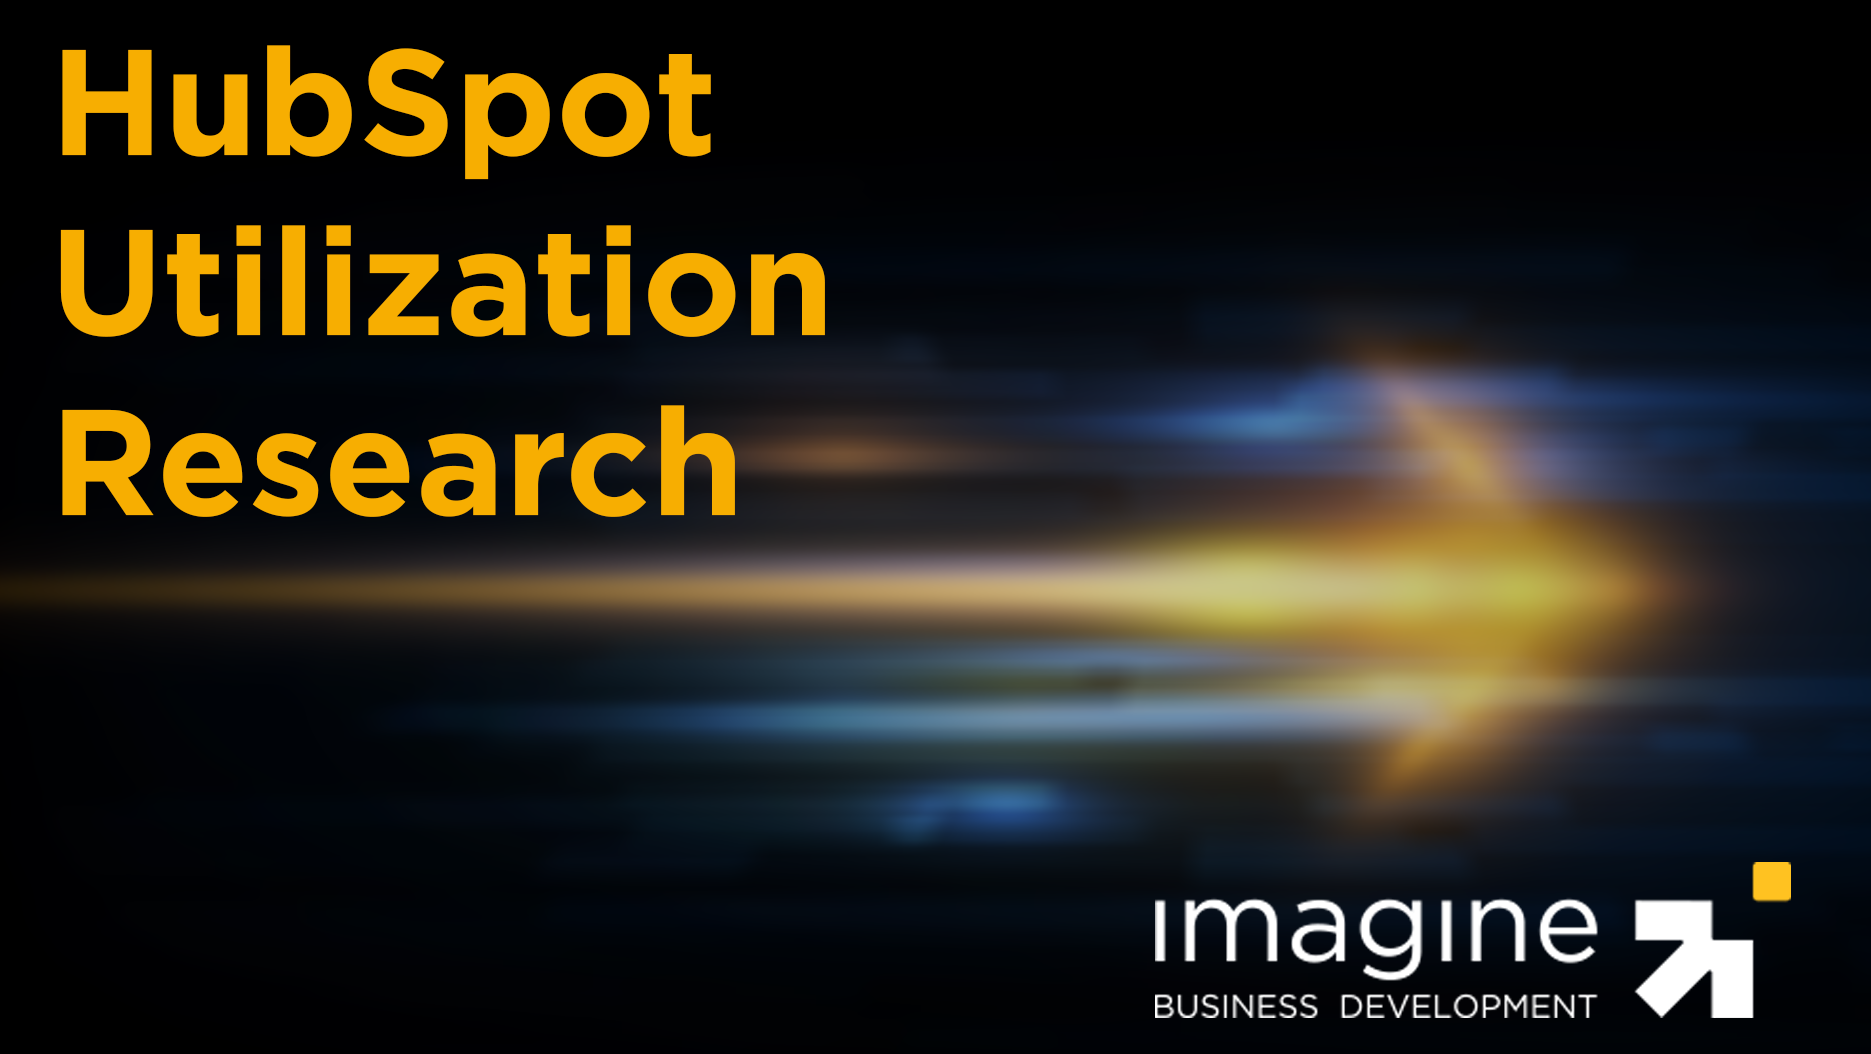 HubSpot_Utilization_Research